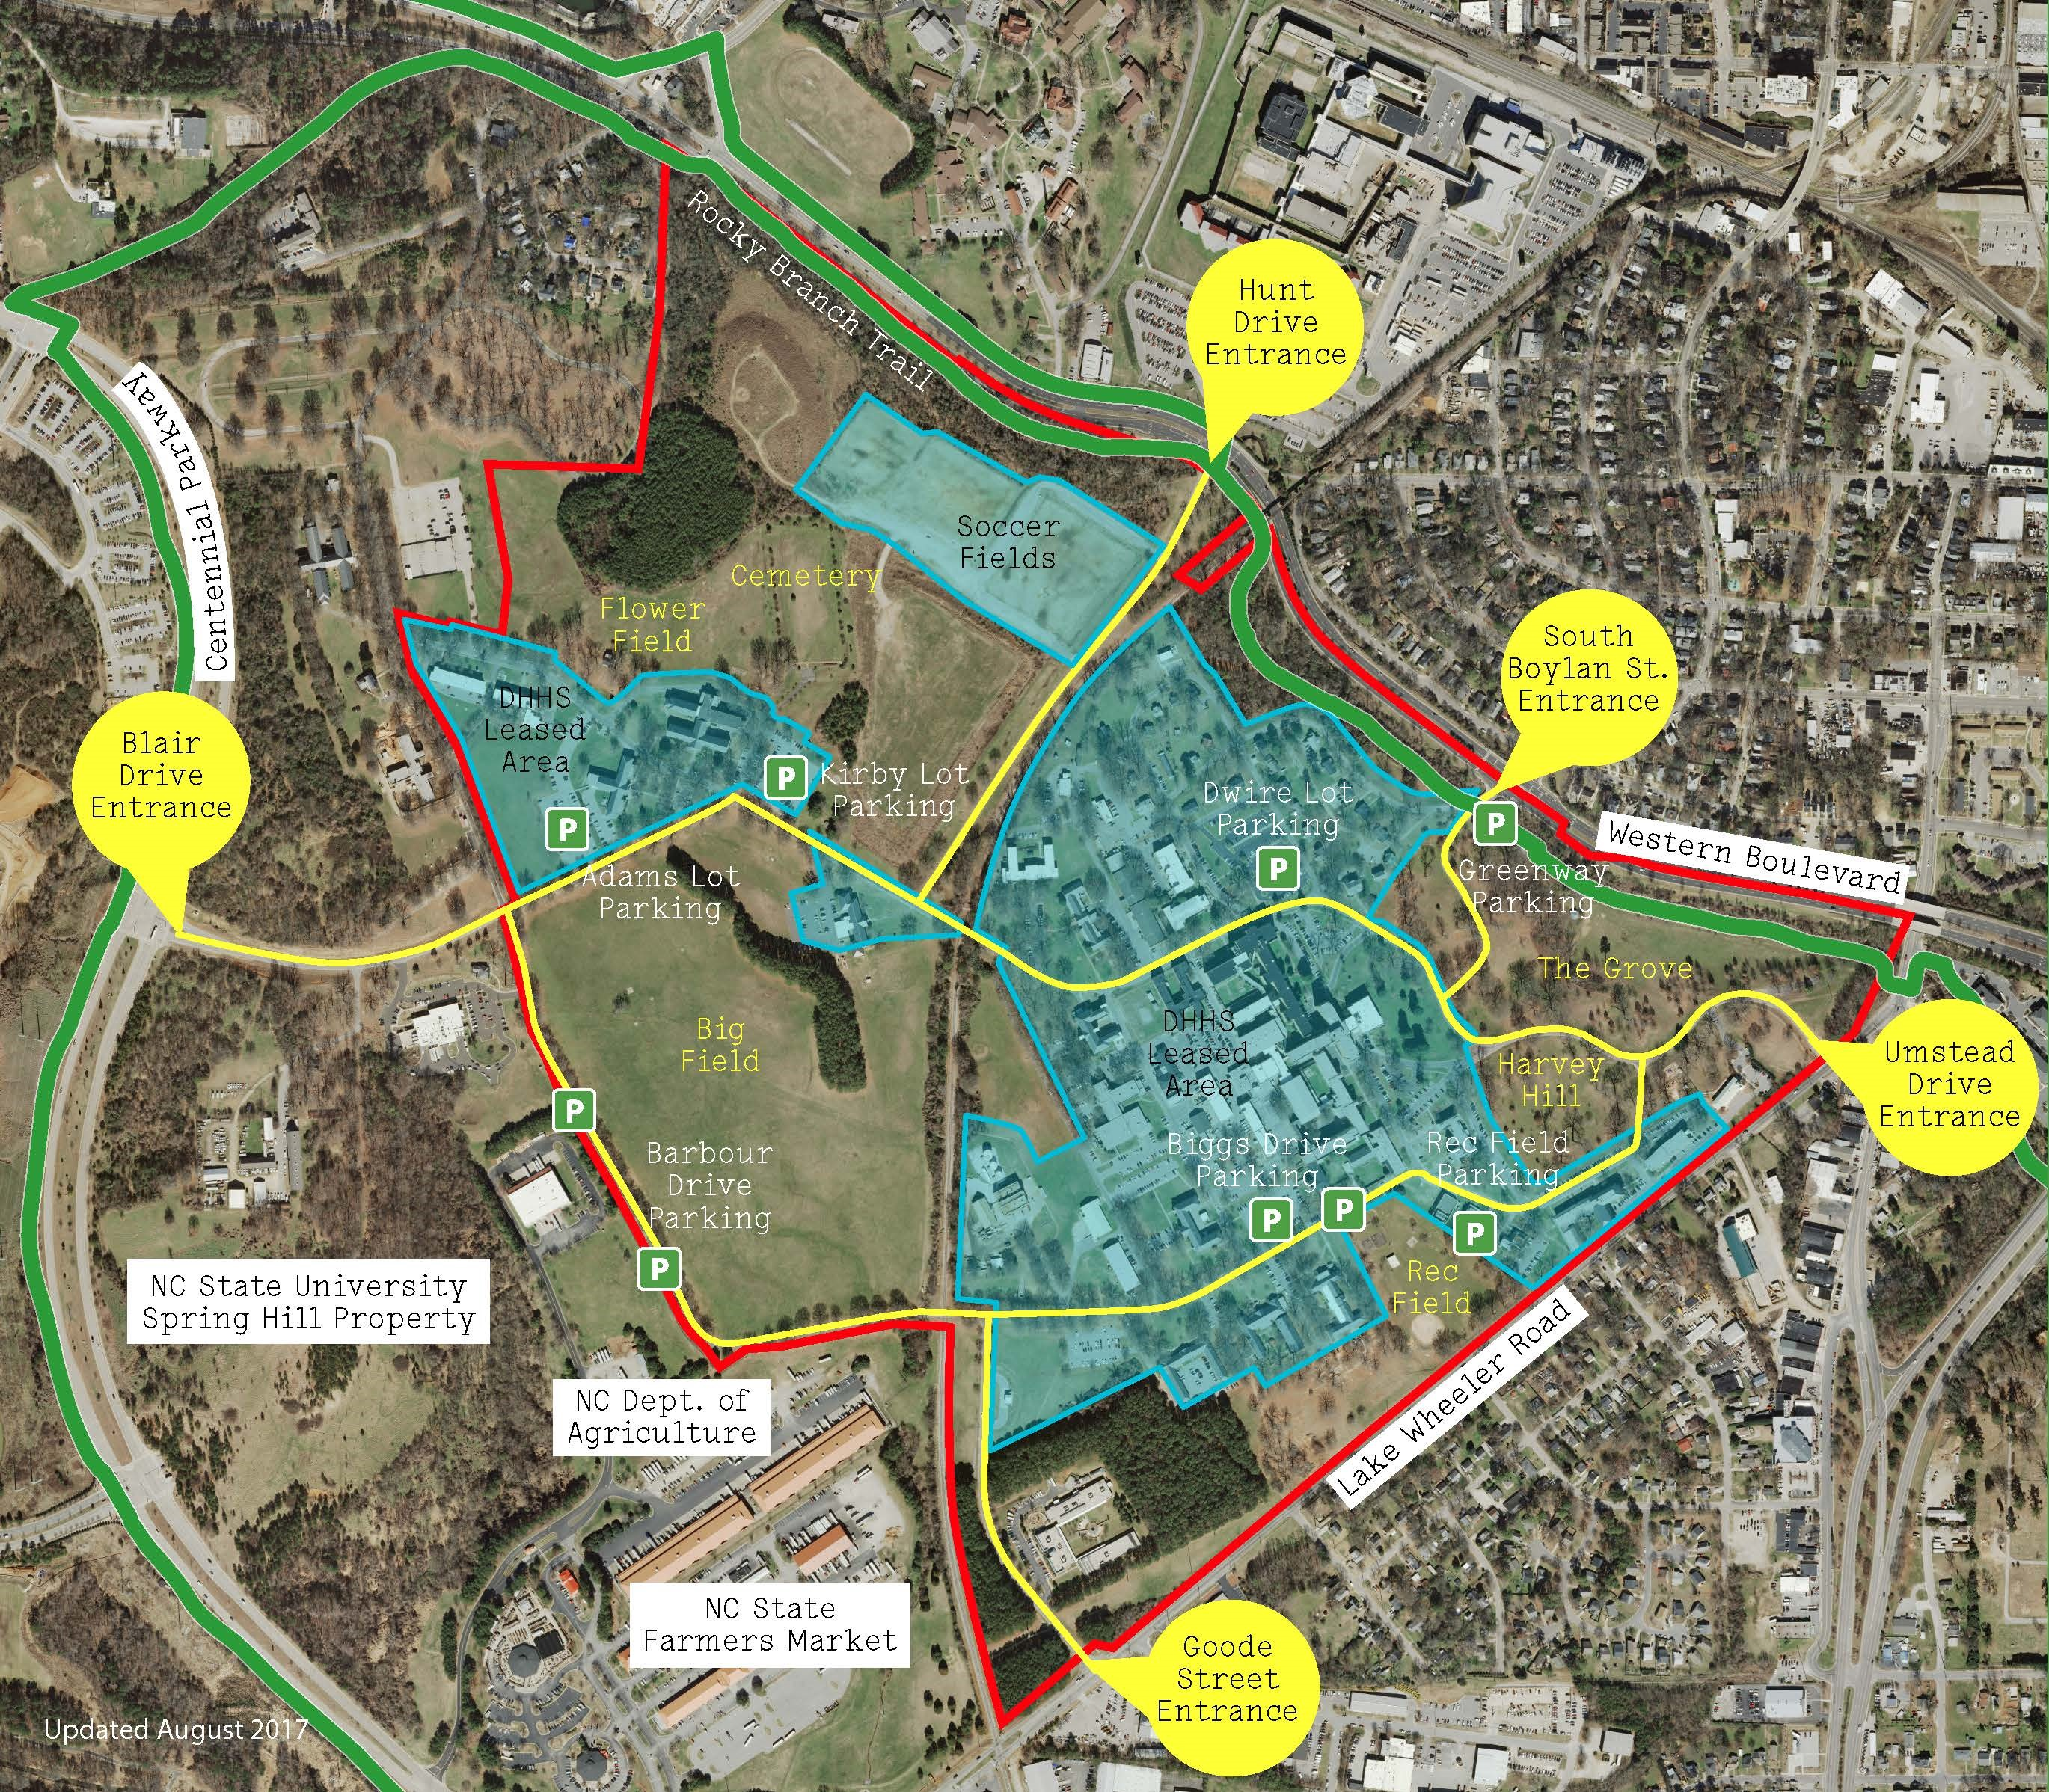 Map of Dix Park with indications of access to the site and parking areas